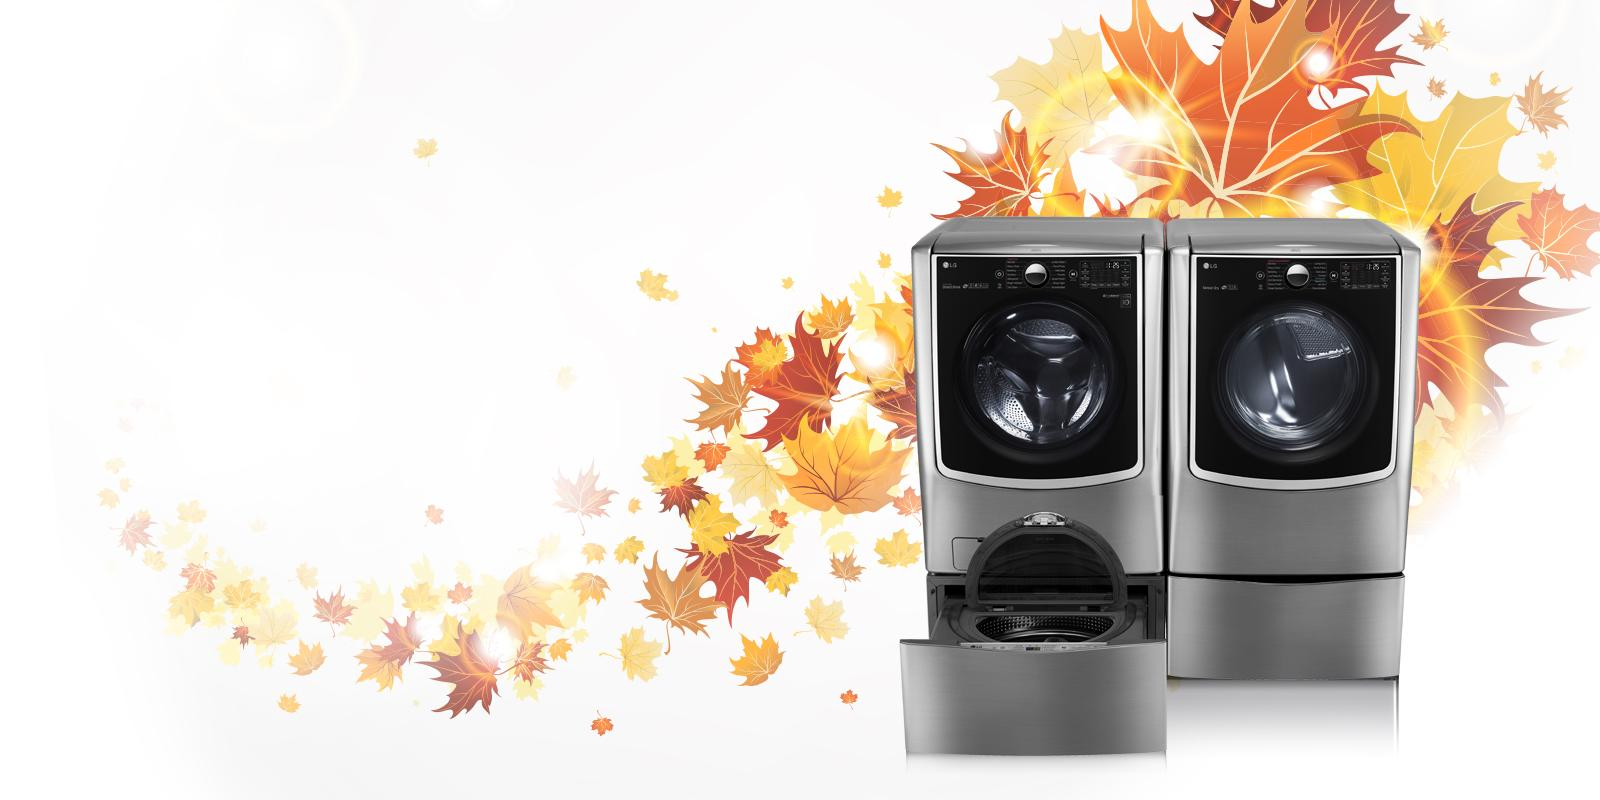 LG_PromotionHero_Laundry_SeptemberSavings